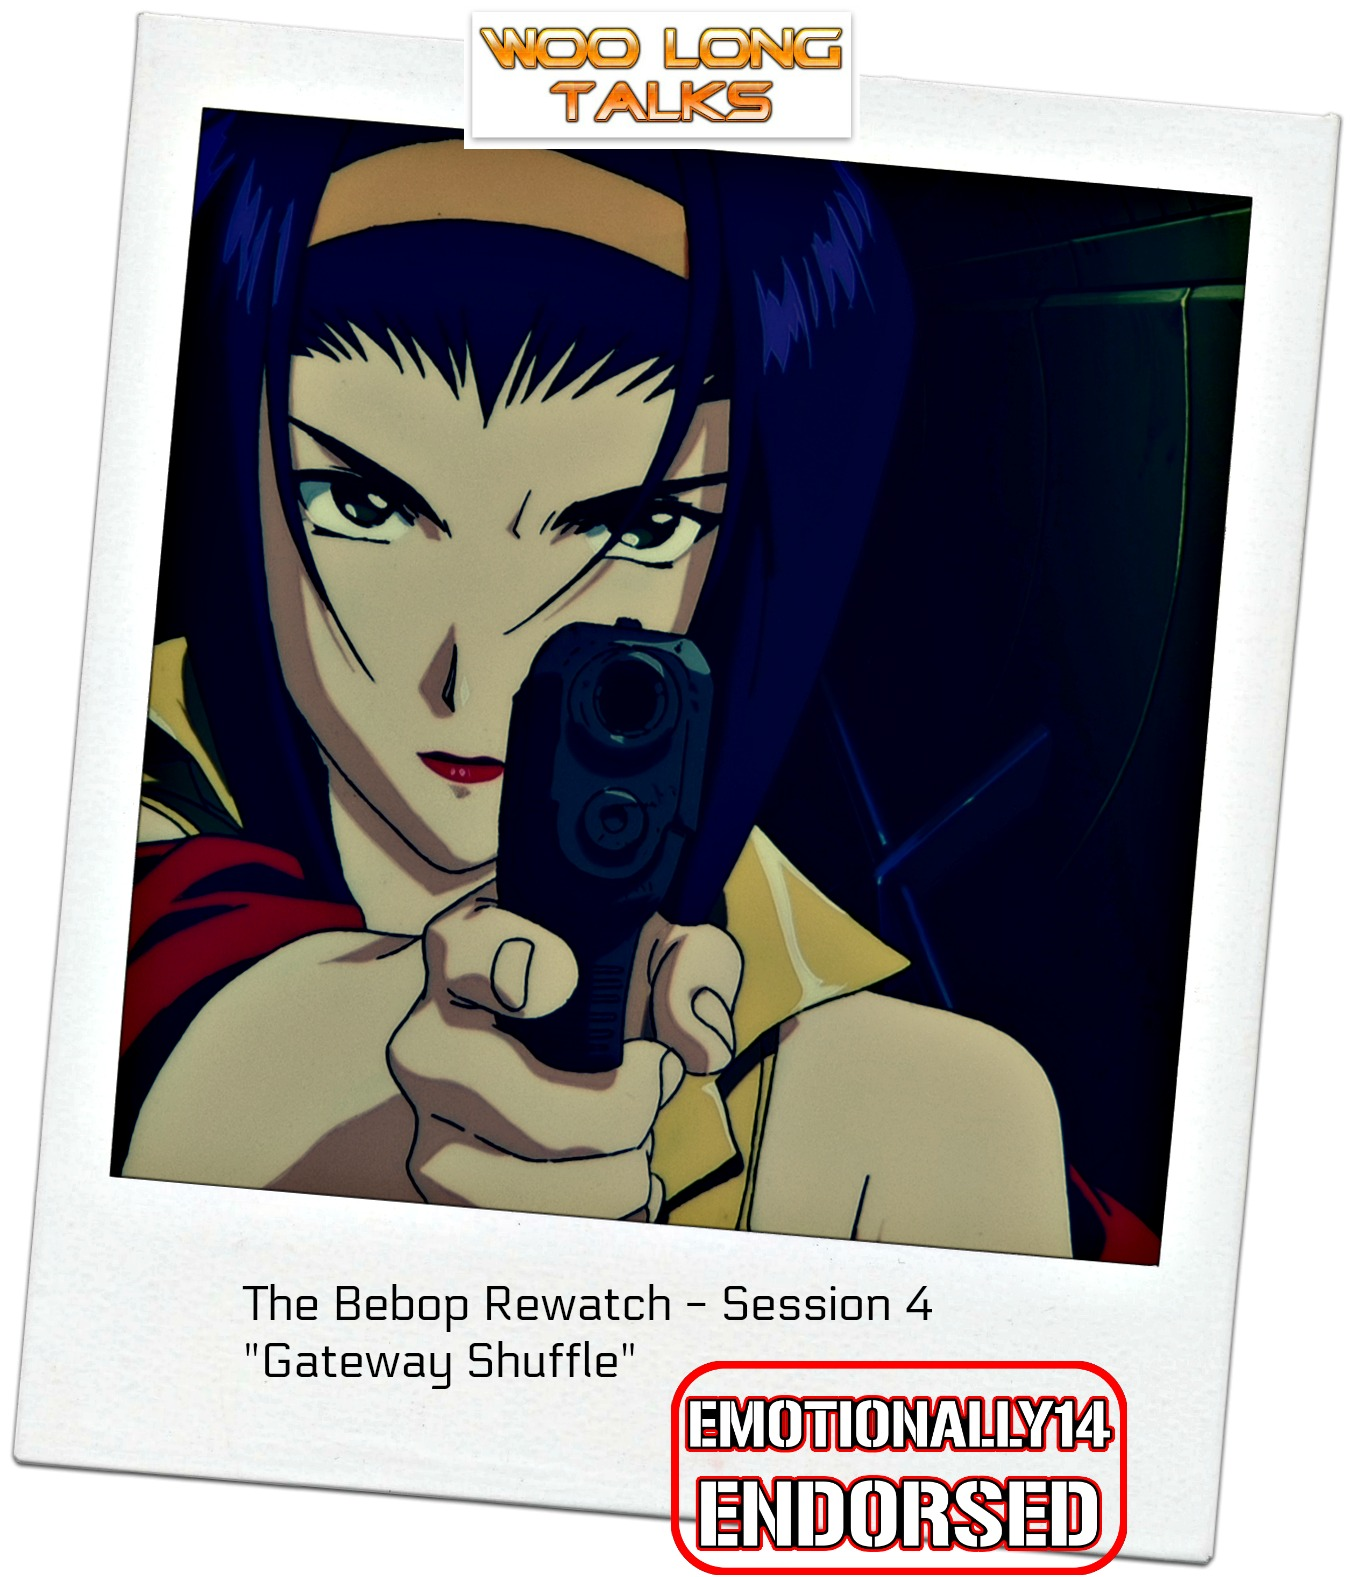 The Bebop Rewatch : Session 4 - Gateway Shuffle